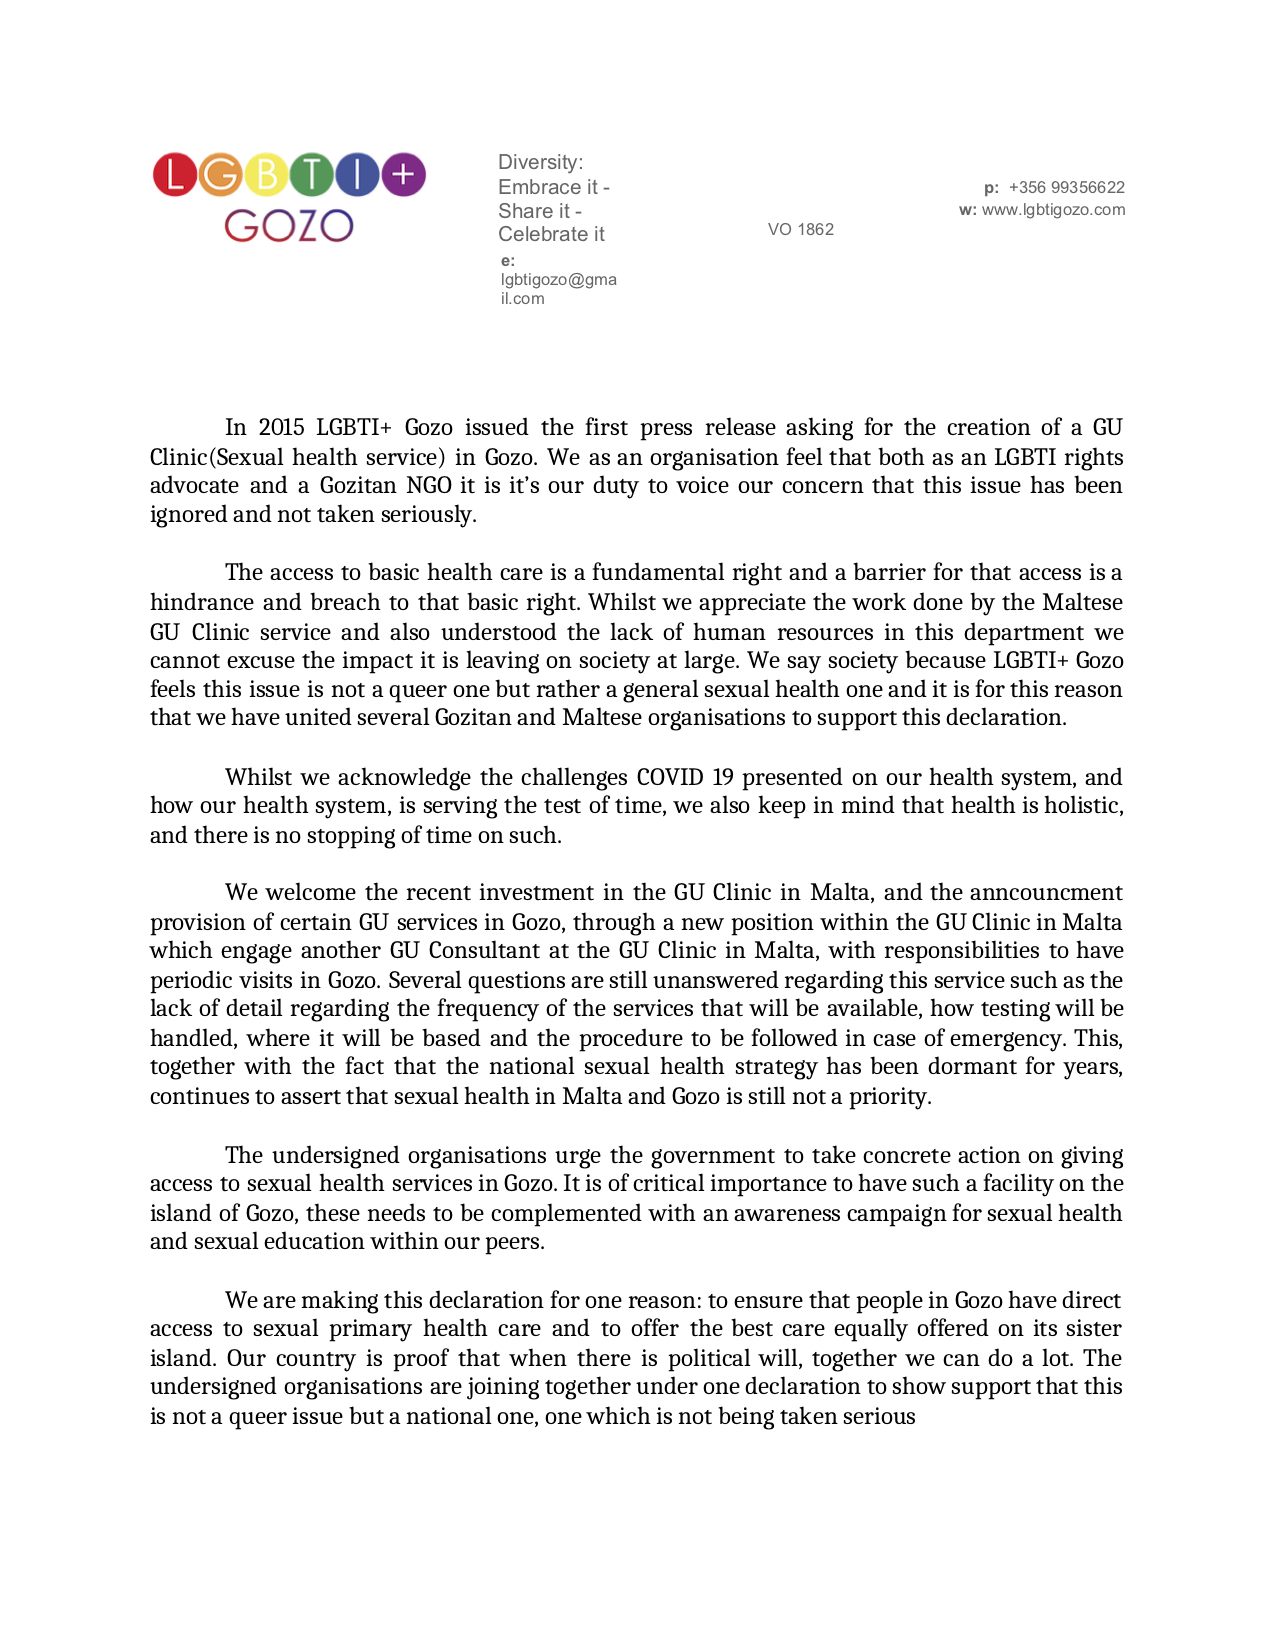 GU Clinic in Gozo statement